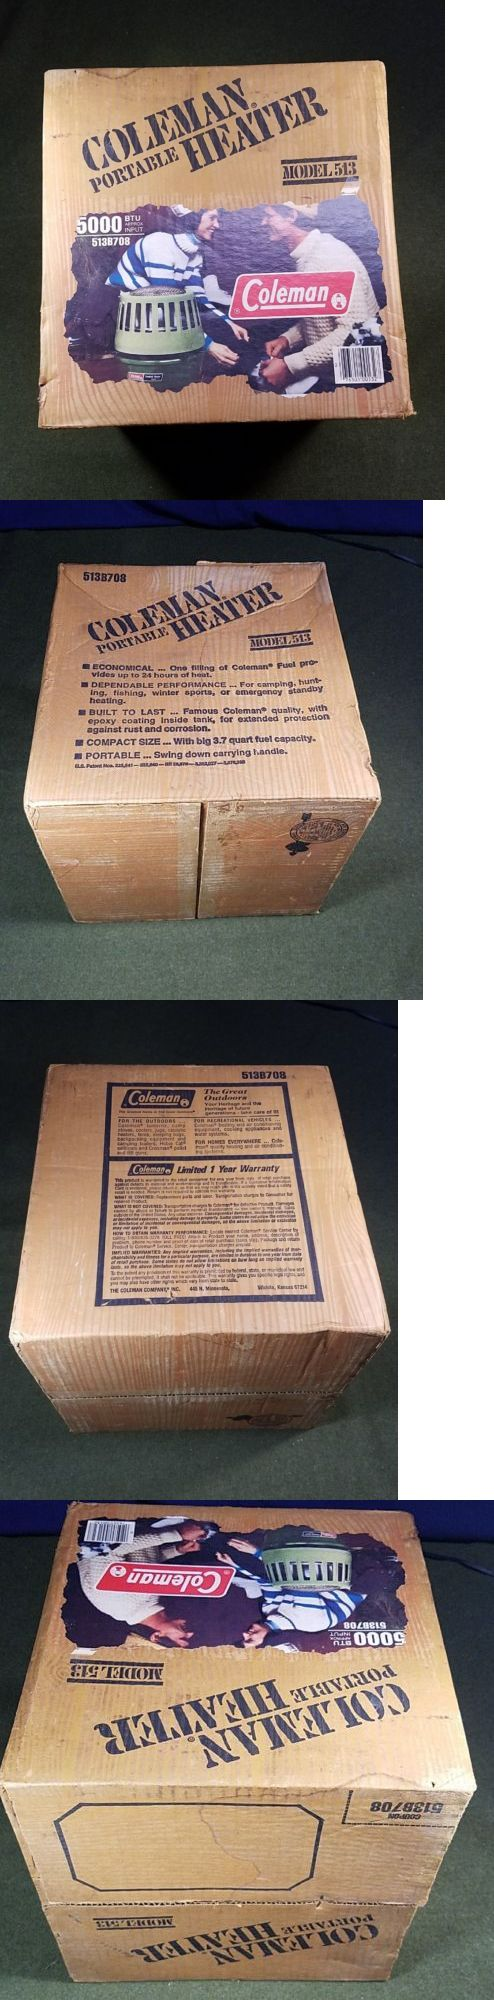 Generators and Heaters 16039: New #513 Coleman Portable Gas Catalytic Heater 5000 Btu Camping Hunting Fishing -> BUY IT NOW ONLY: $69.99 on eBay!